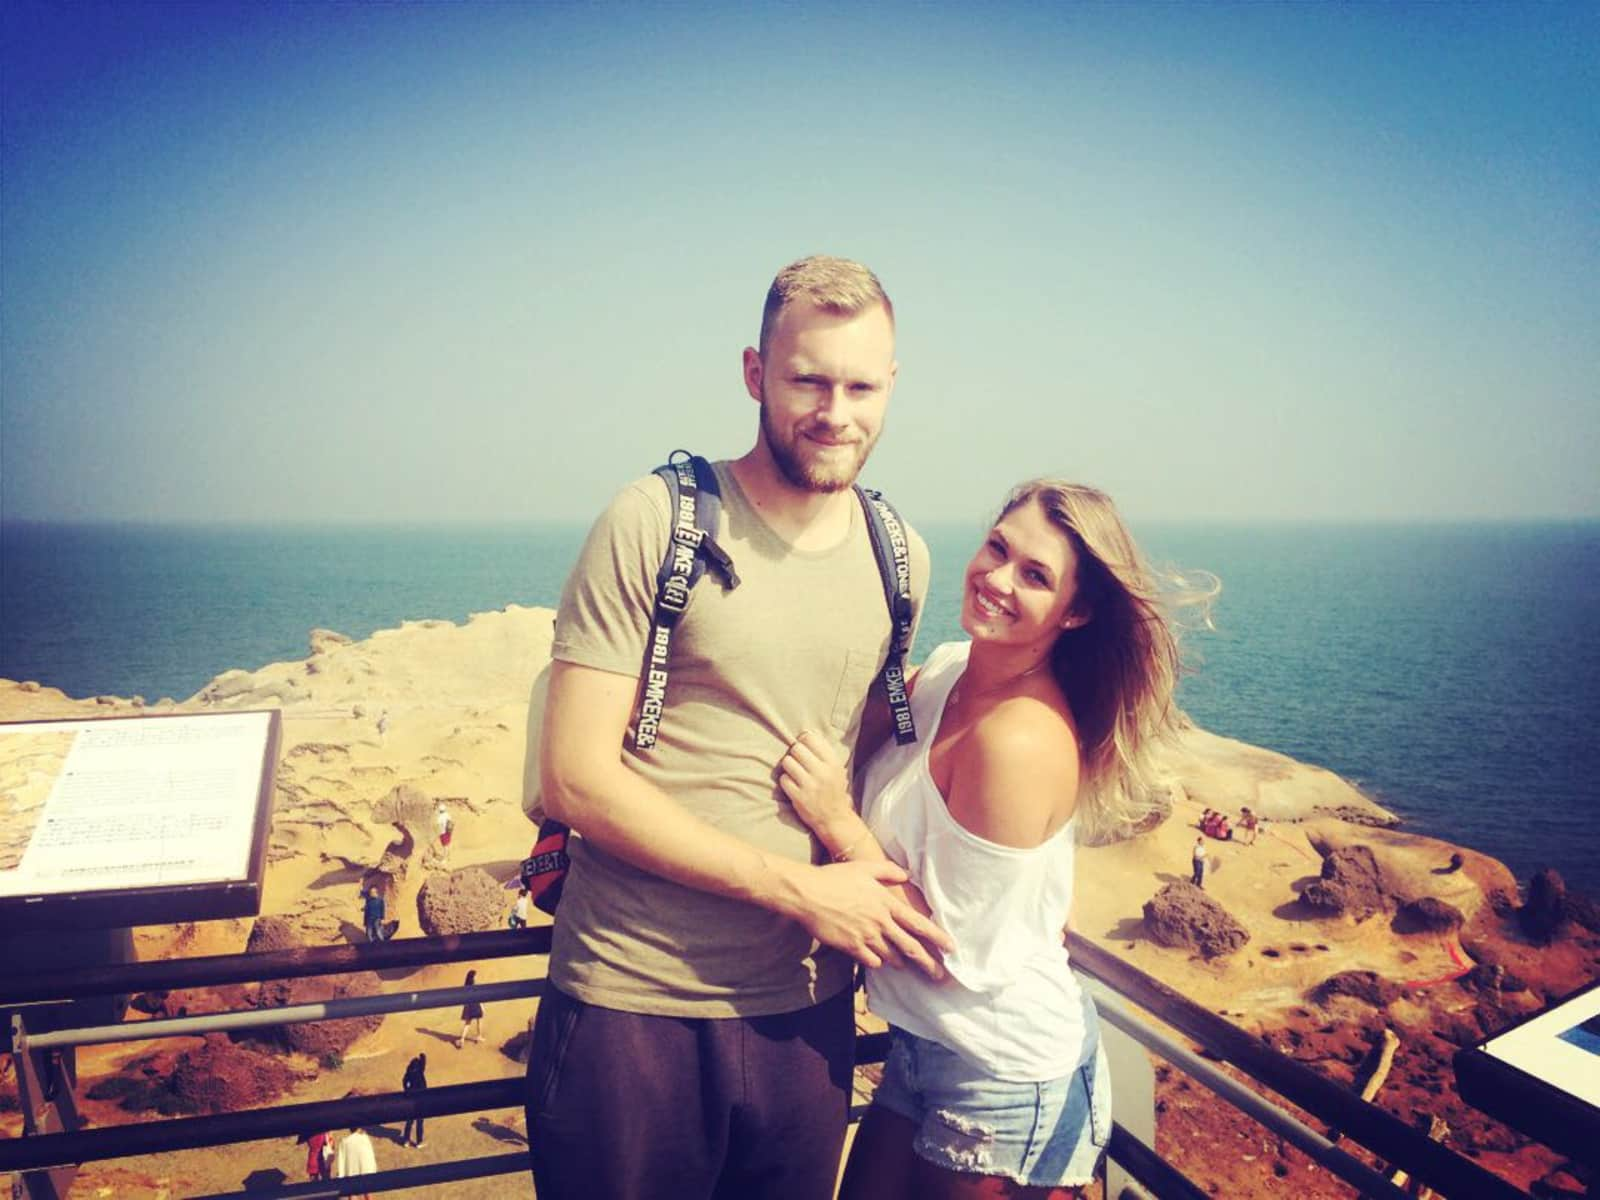 Steffen & Theresa from Erfurt, Germany